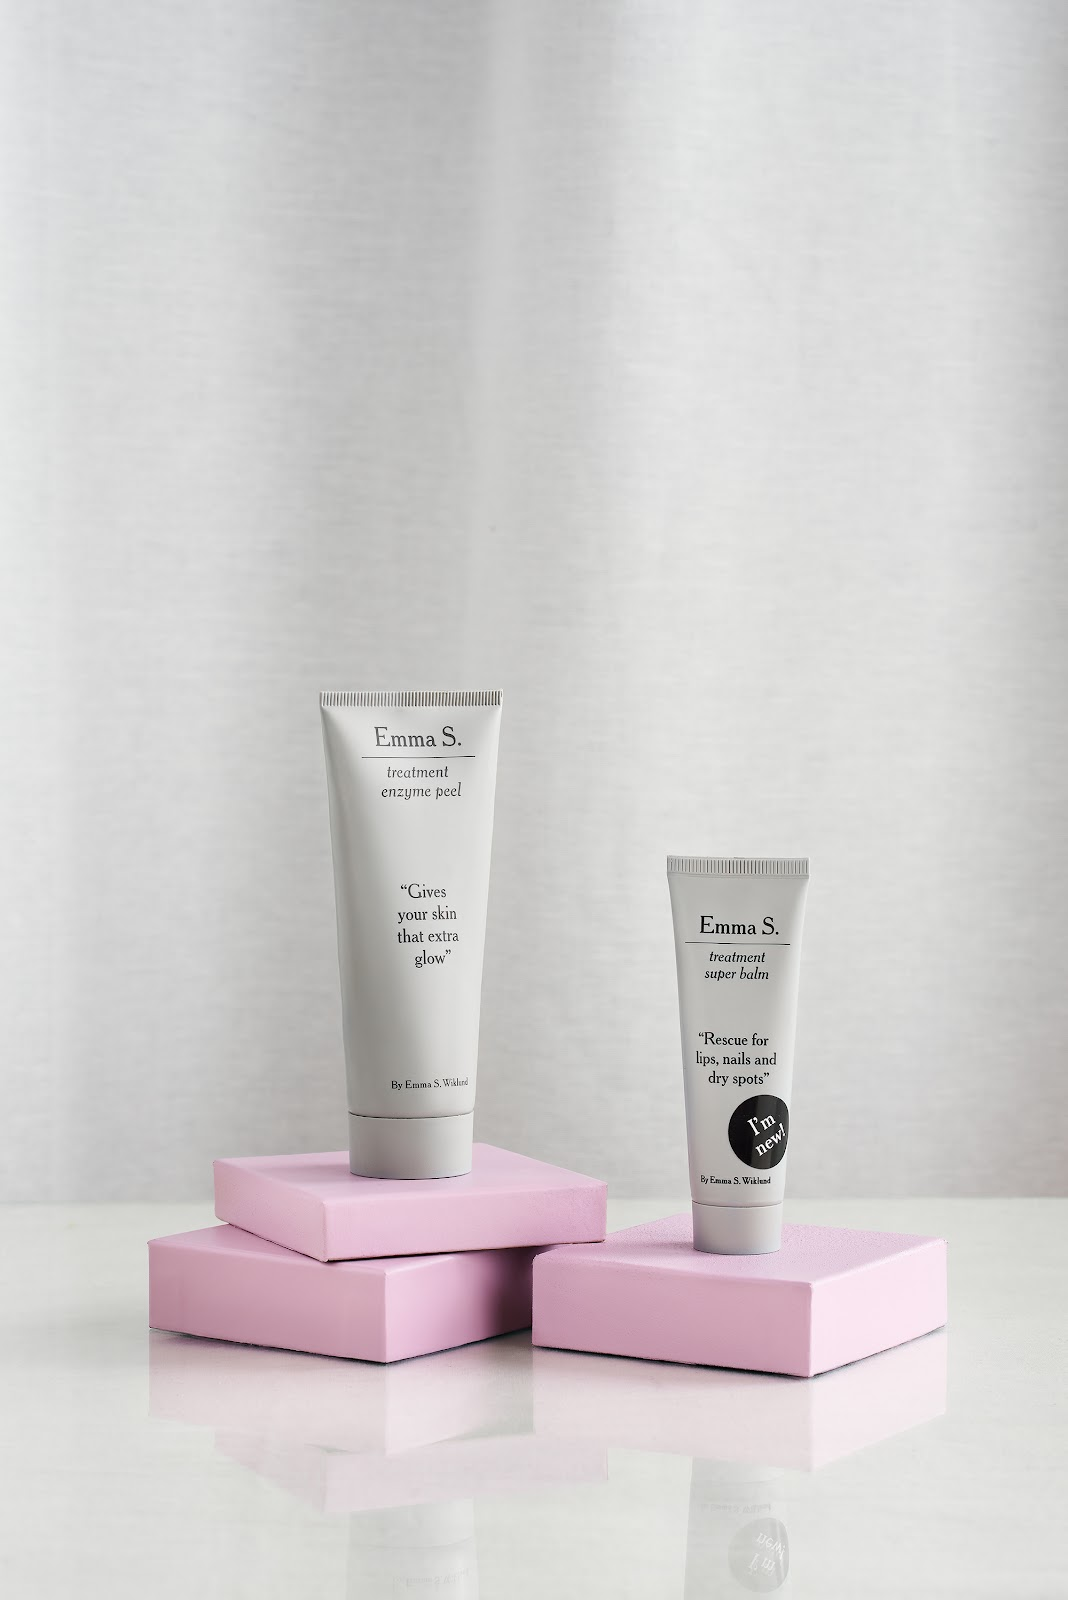 Emma S. treatment enzyme peel och treatment super balm